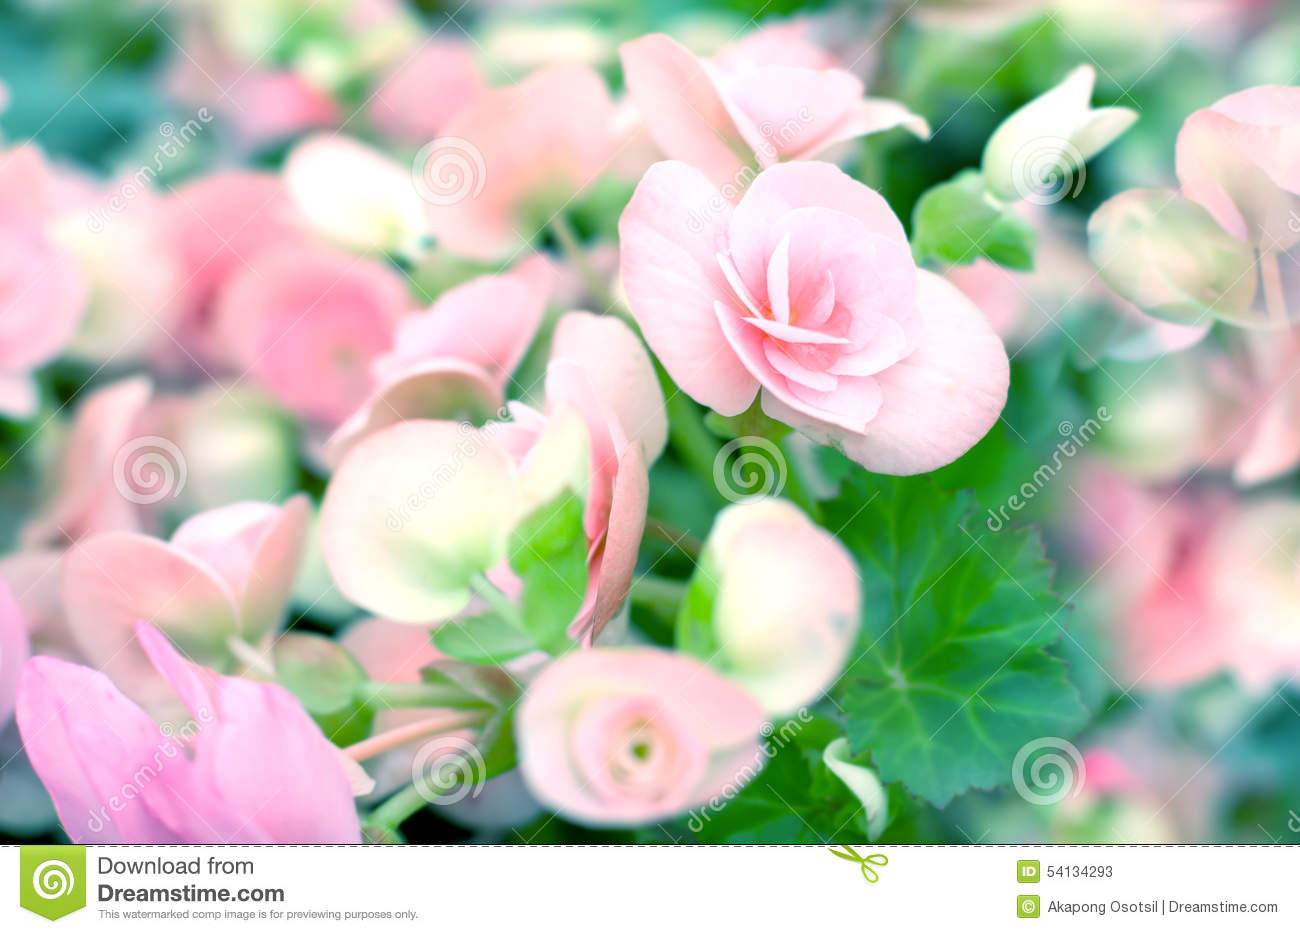 Sweet Begonia Beauty Flower In The Garden Stock Image - Image of ...